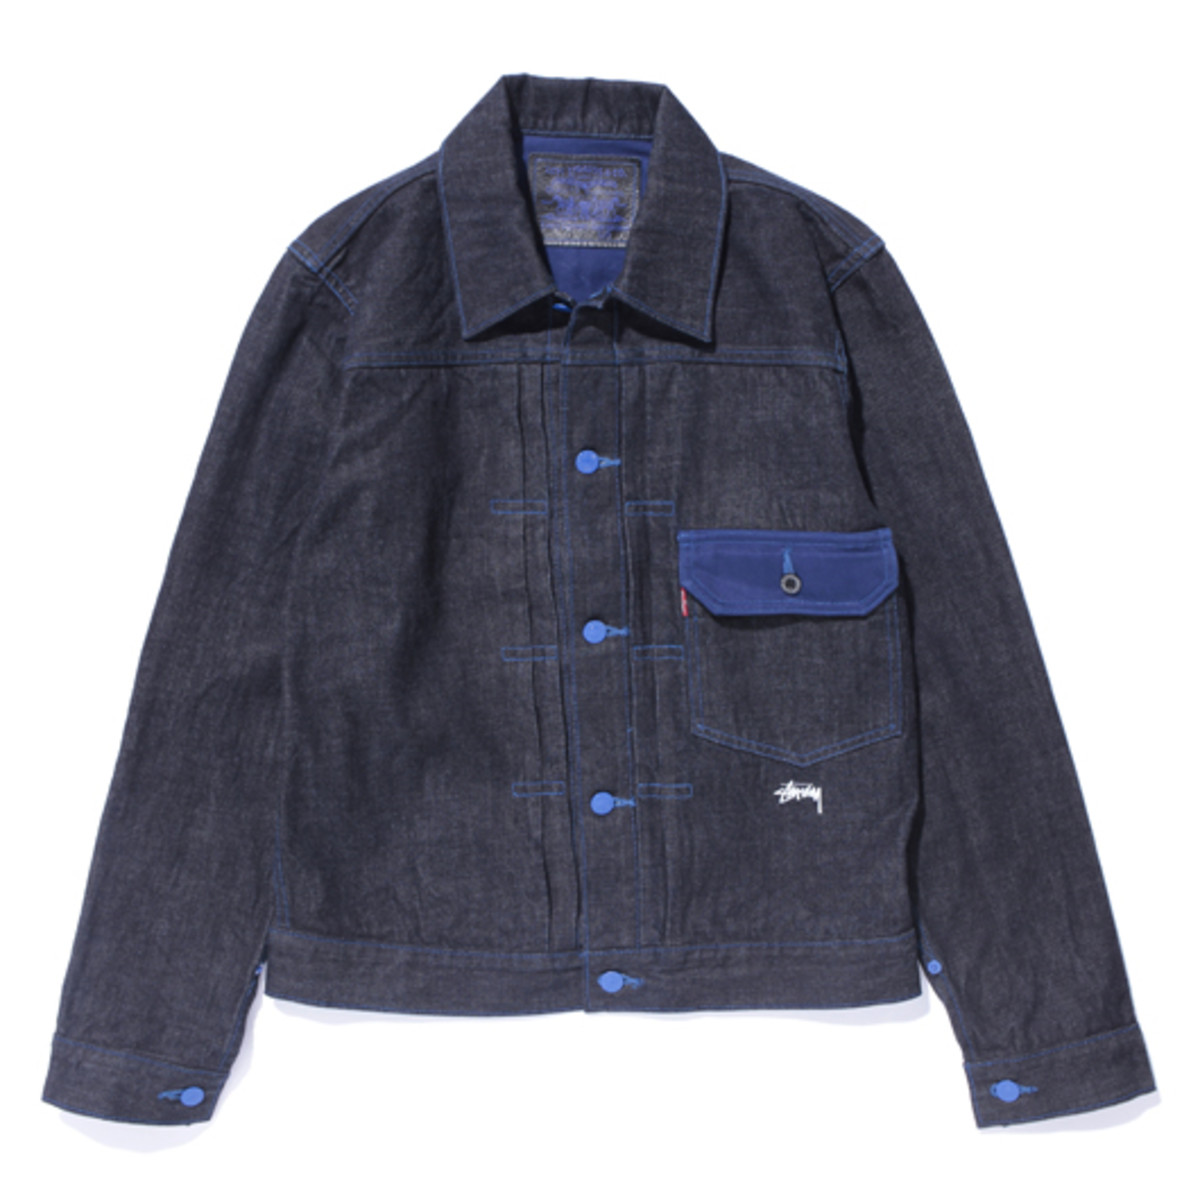 1st-trucker-jacket-01